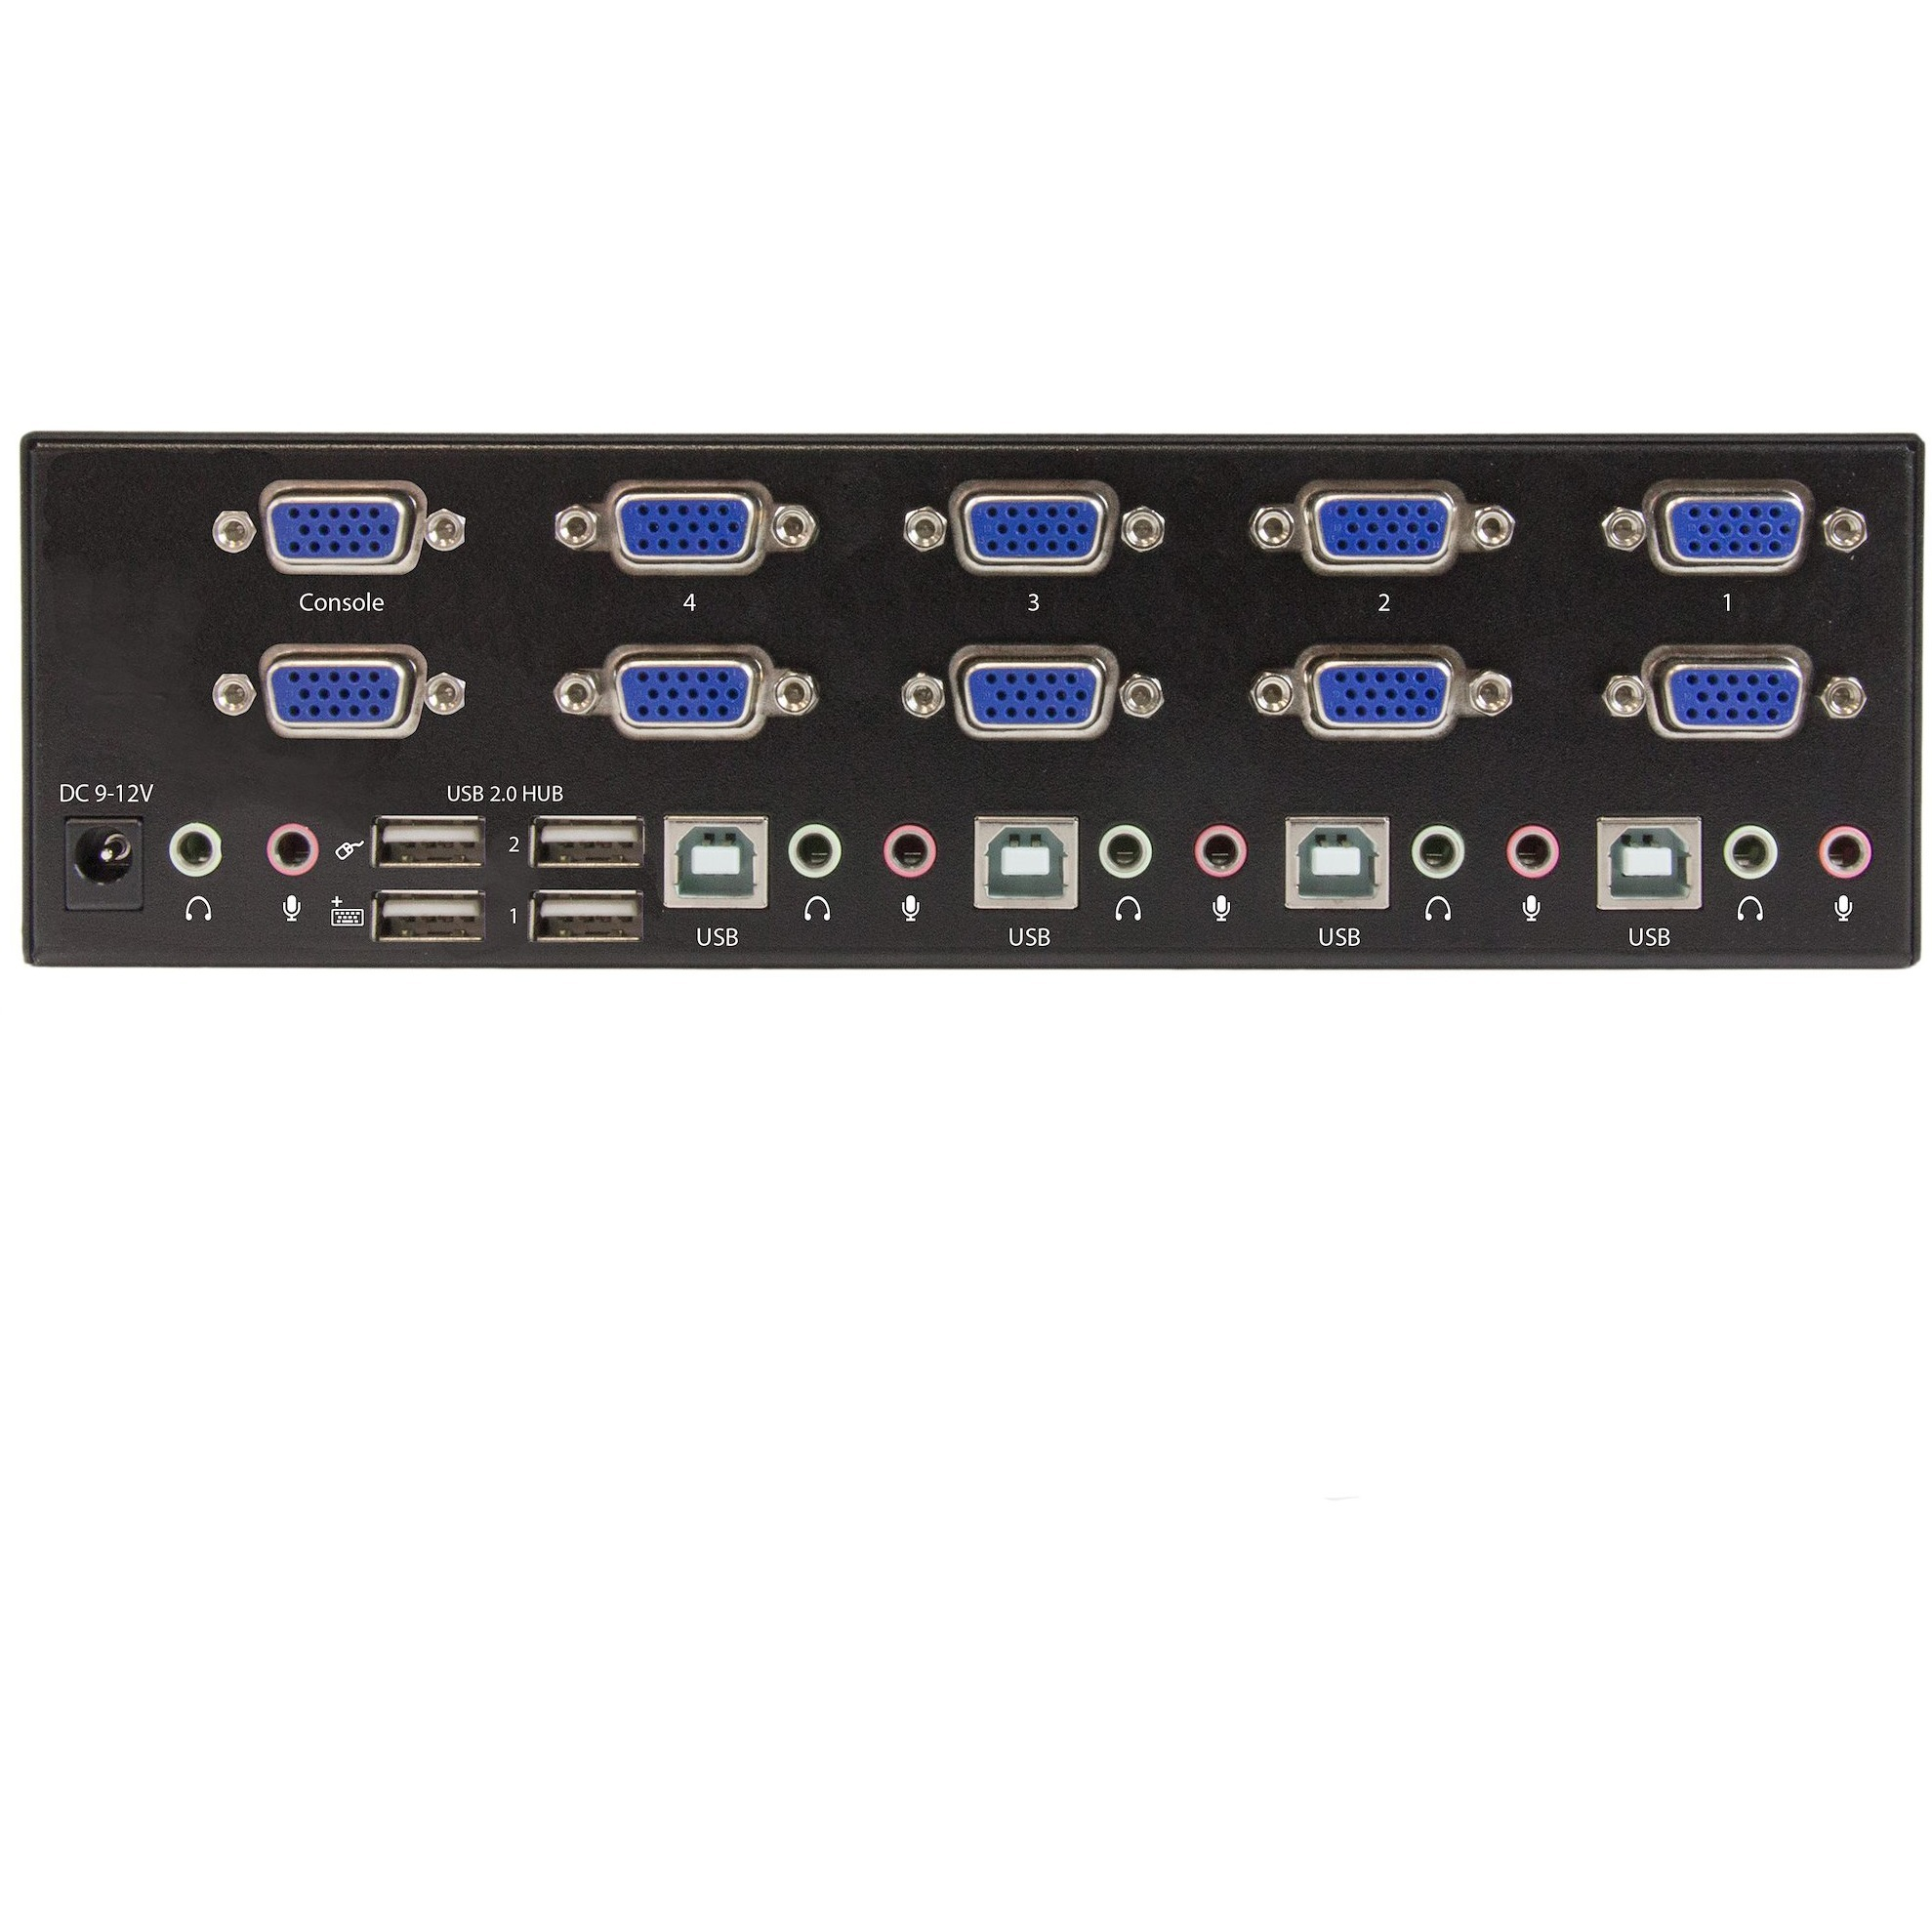 StarTech.com 4-port KVM Switch with Dual VGA and 2-port USB Hub - USB 2.0 - 4 Computers - 1 Local Users